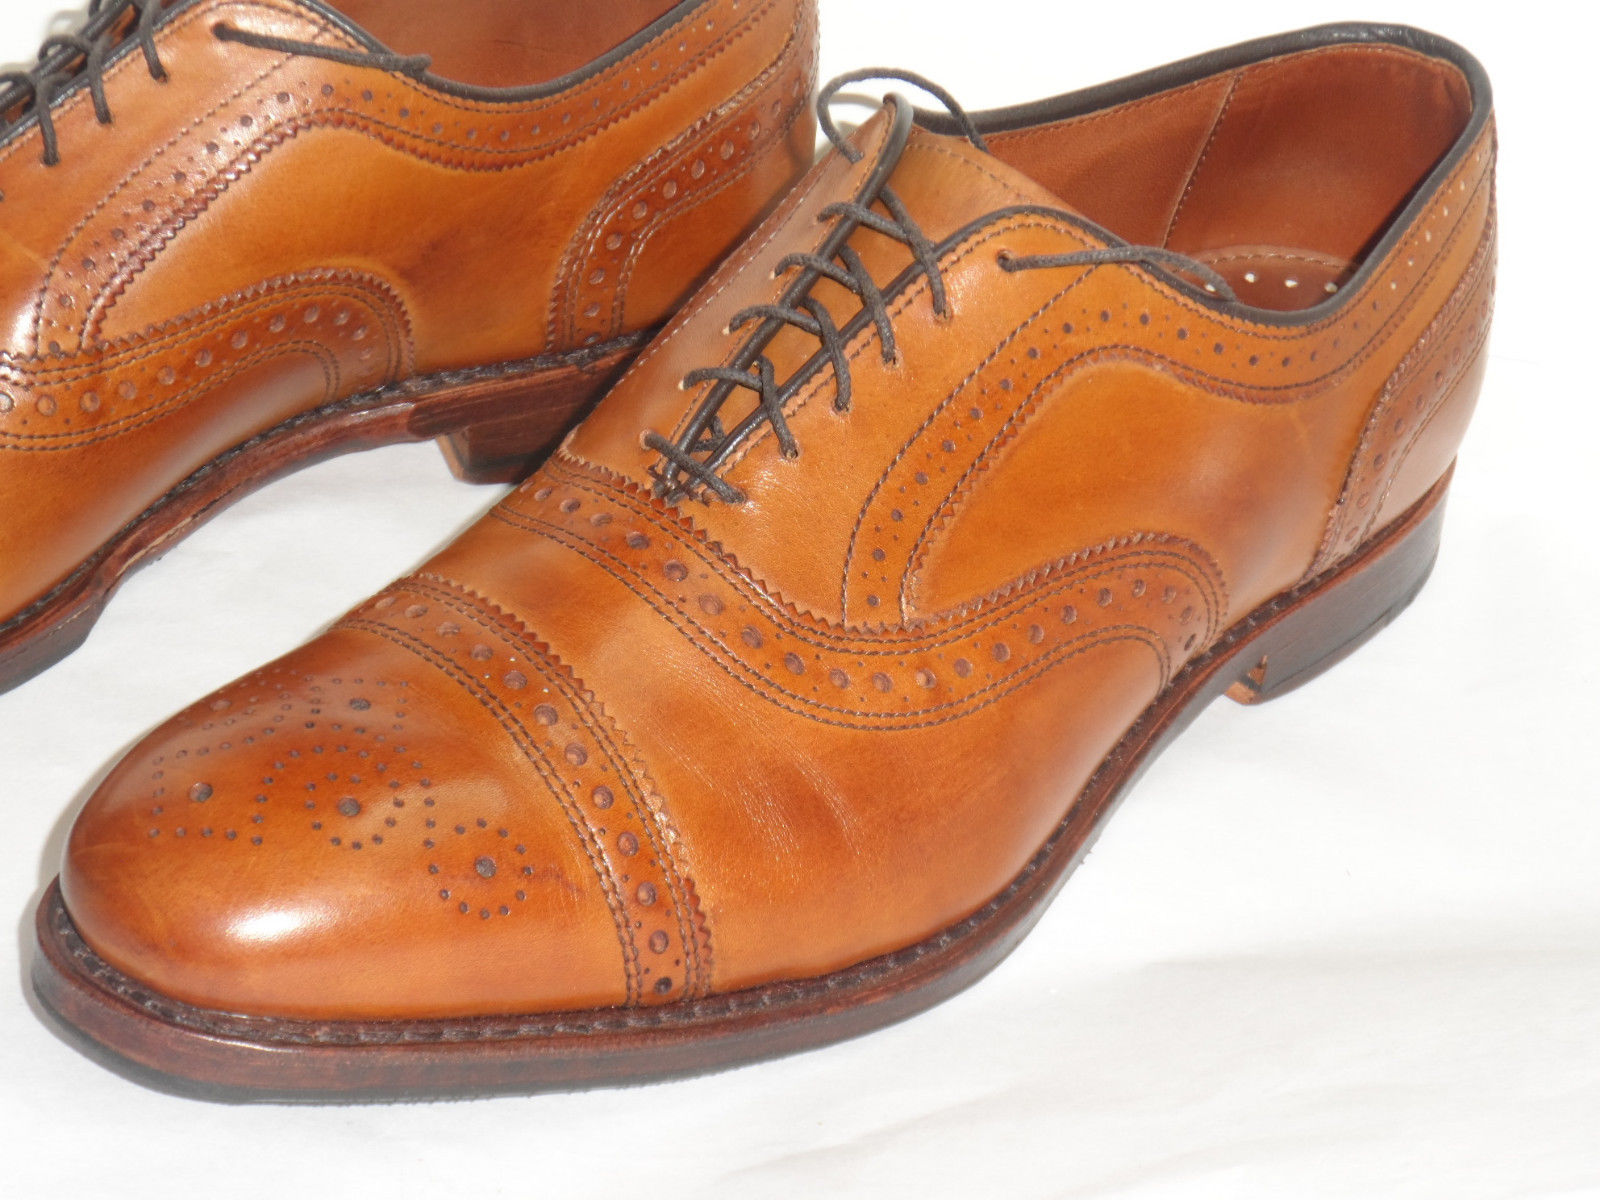 83feda7fd034d Brooks Brothers Shoes - Great Price - ClassicVintageApparel